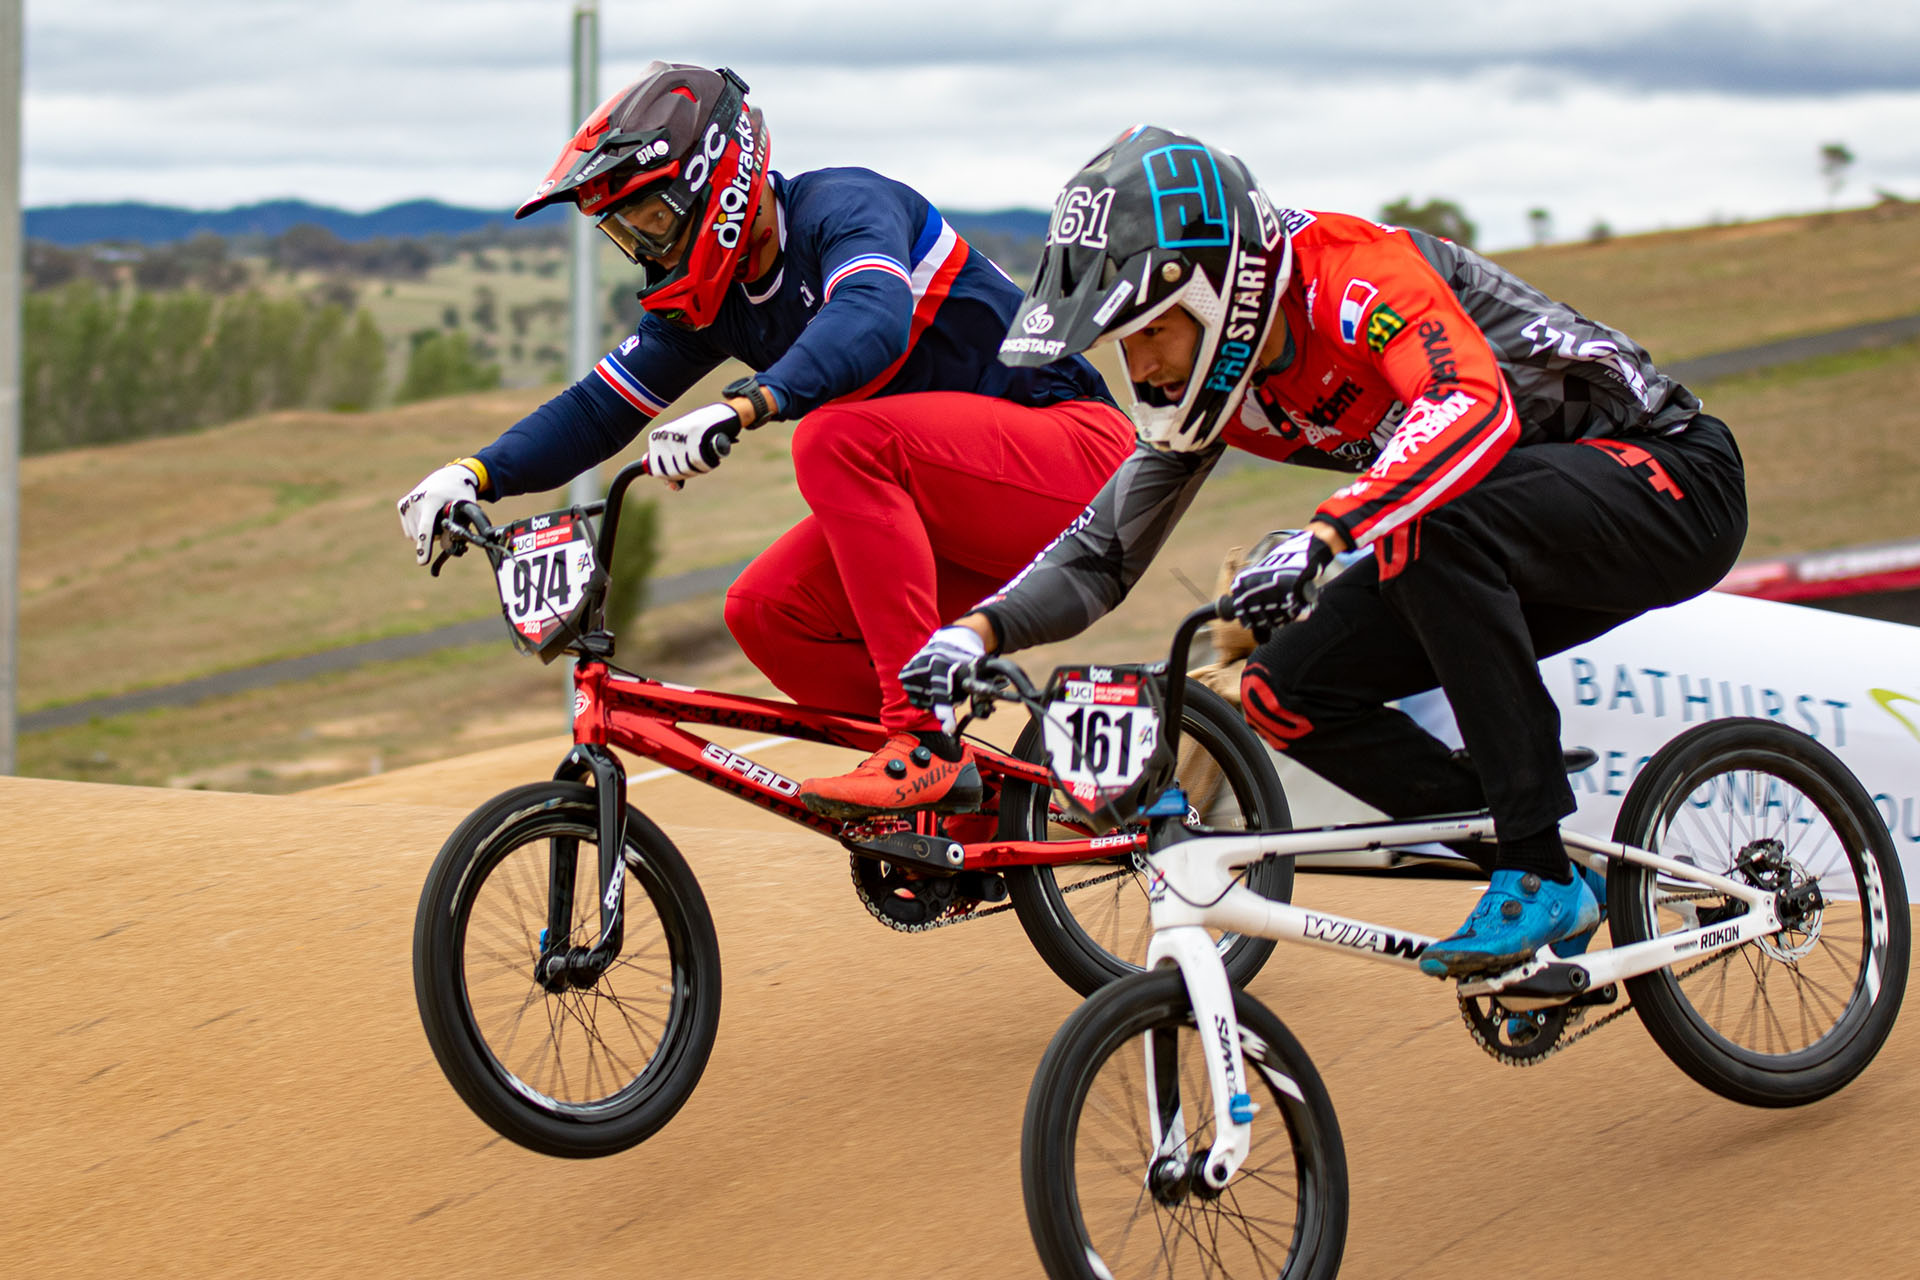 bmx-racing-bathurst2020-romain-mayet-beringer-bicycle (1)